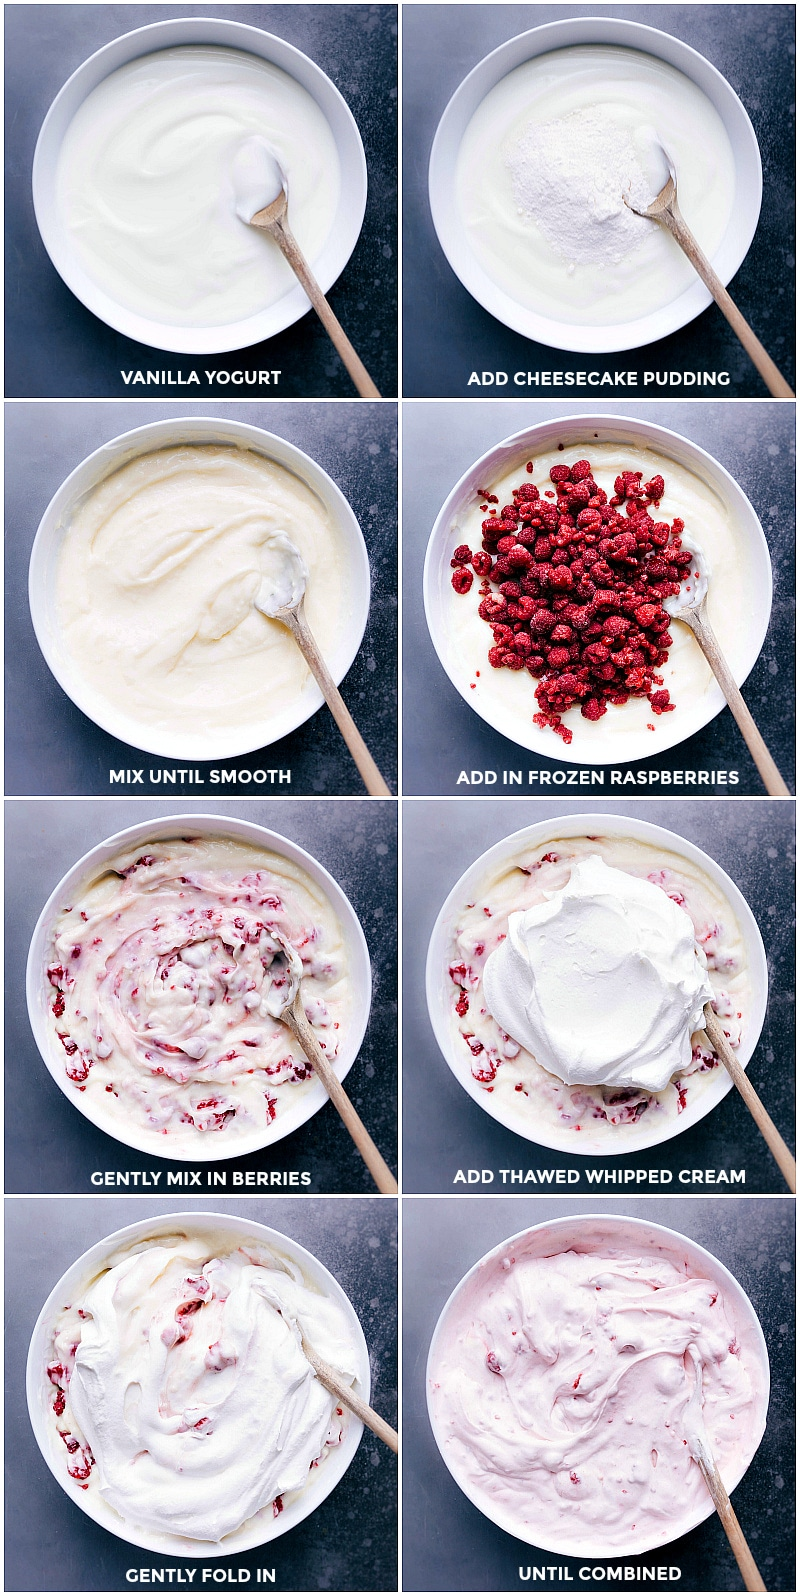 Process shots: Stir together the vanilla yogurt and the dry pudding mix; add in frozen raspberries and thawed whipped topping. Fold gently.